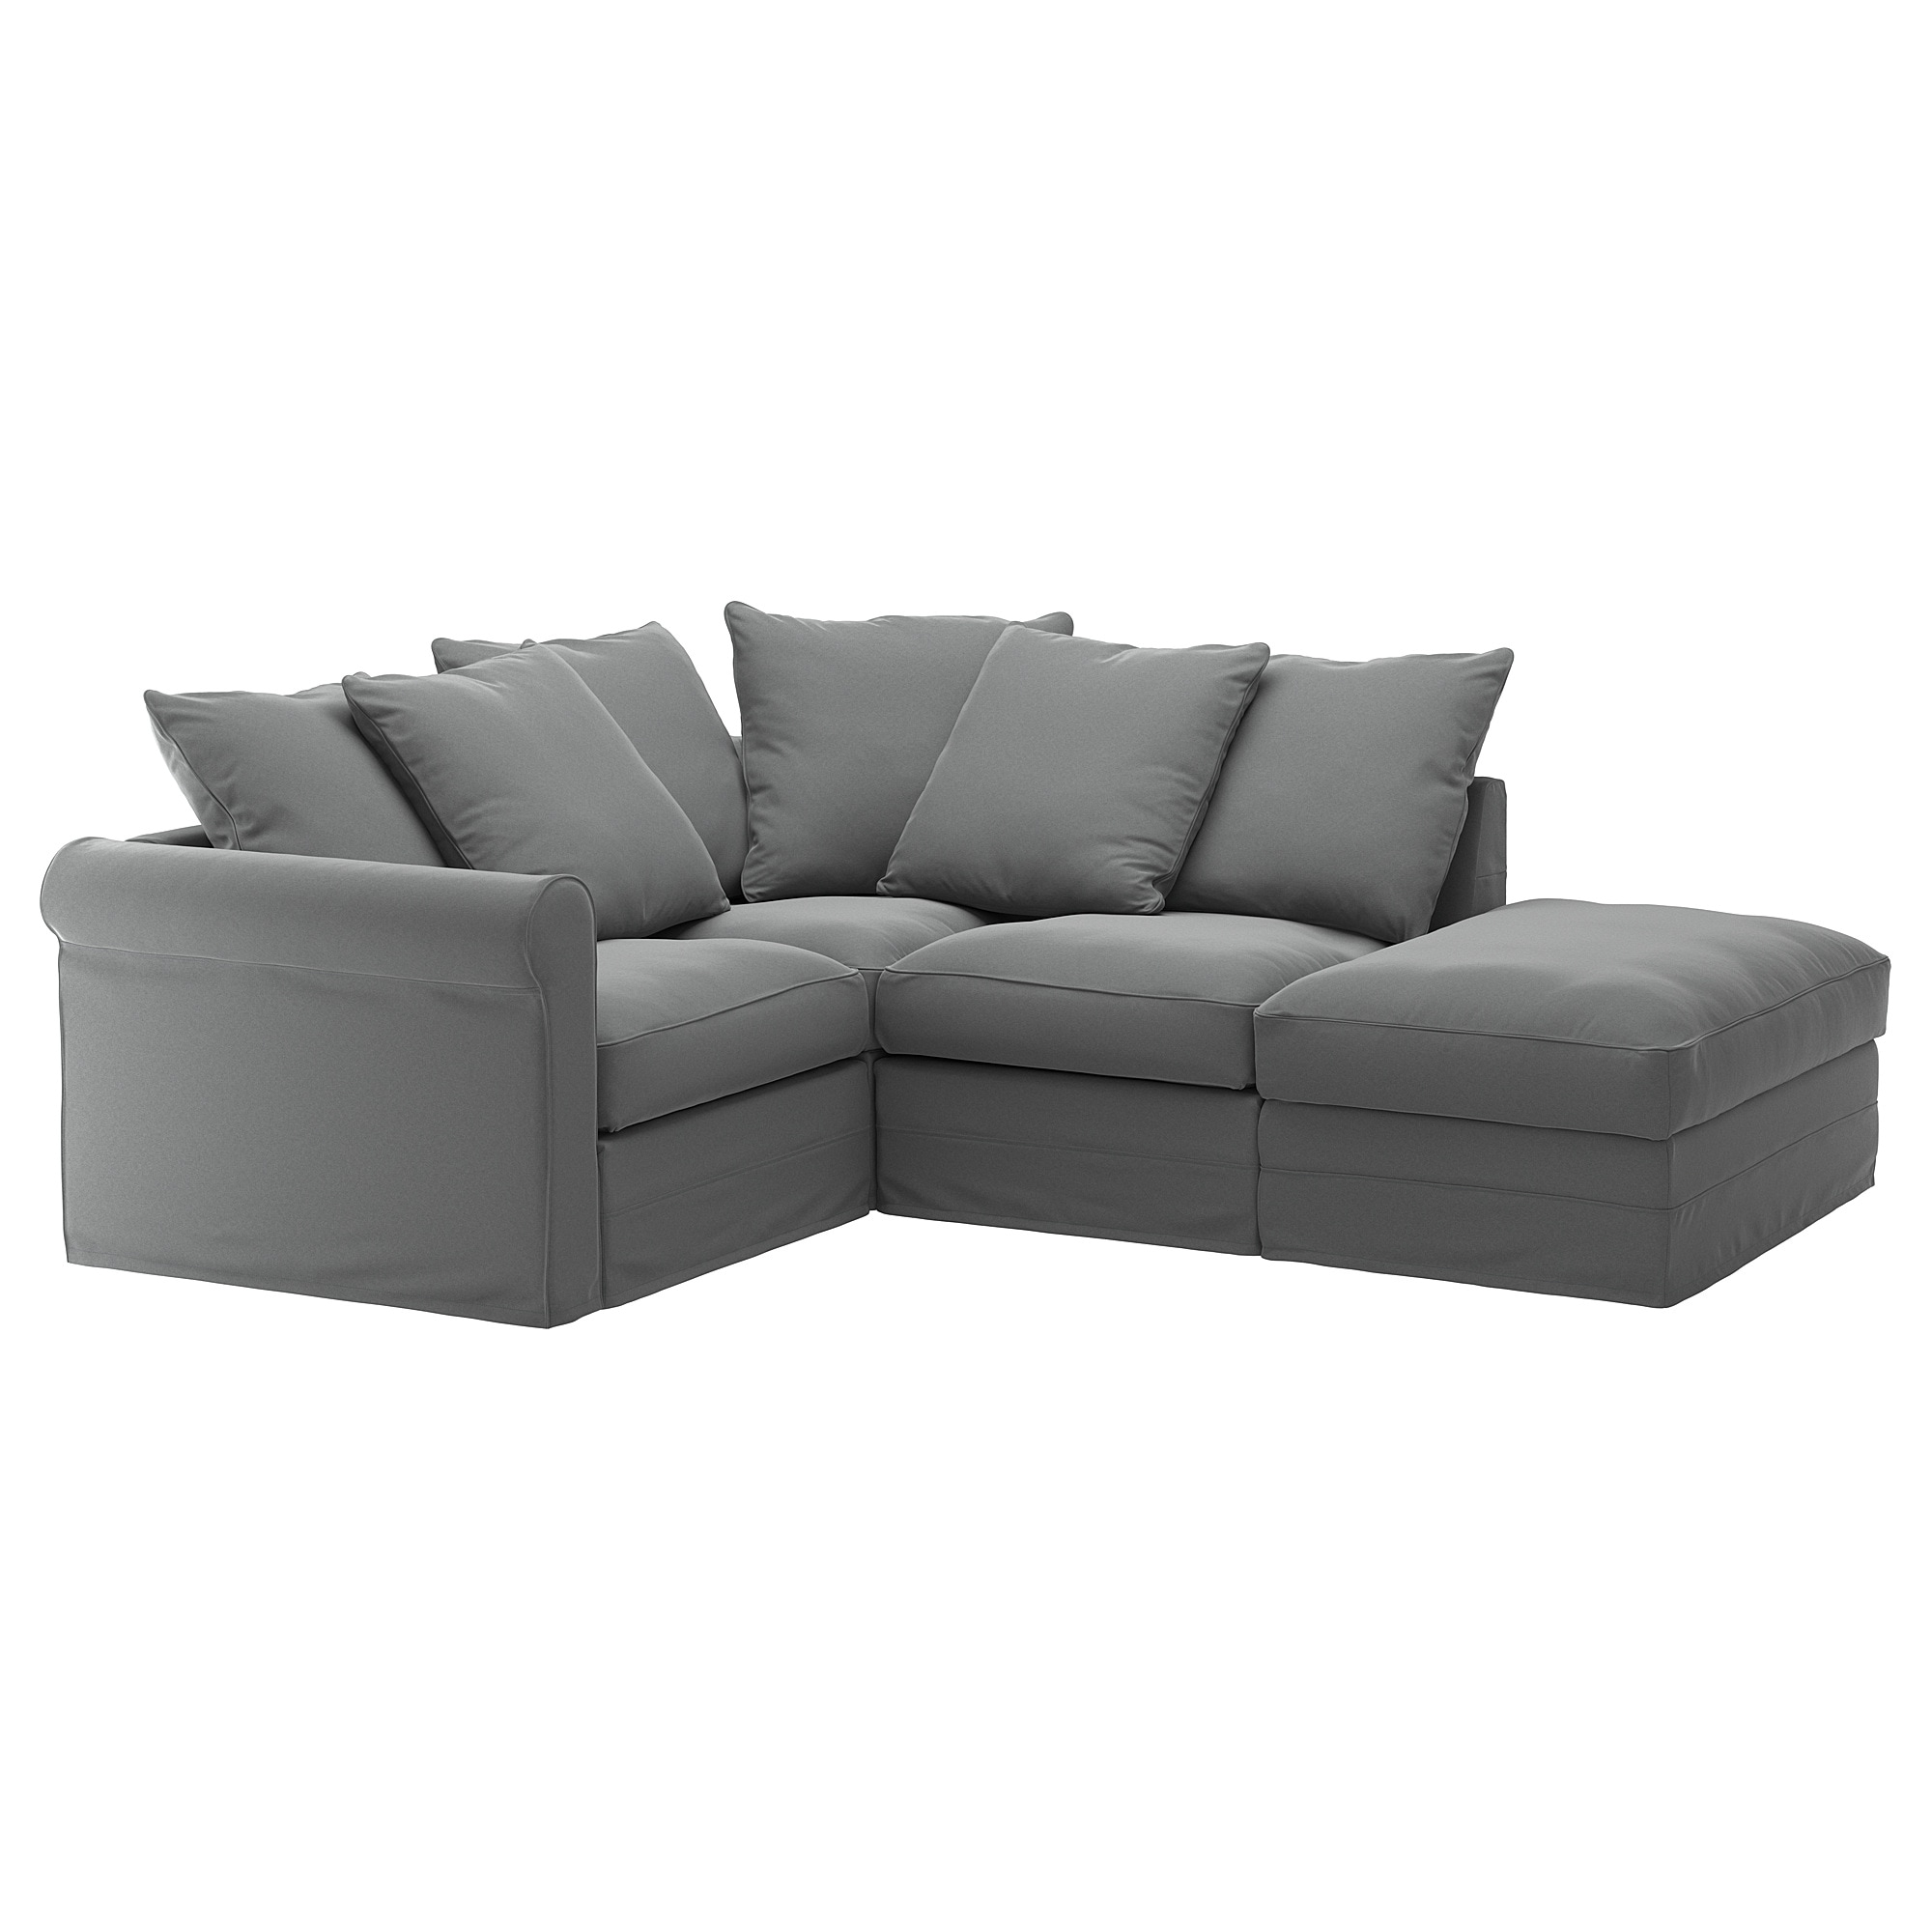 GRNLID Sectional 3 seat corner with open